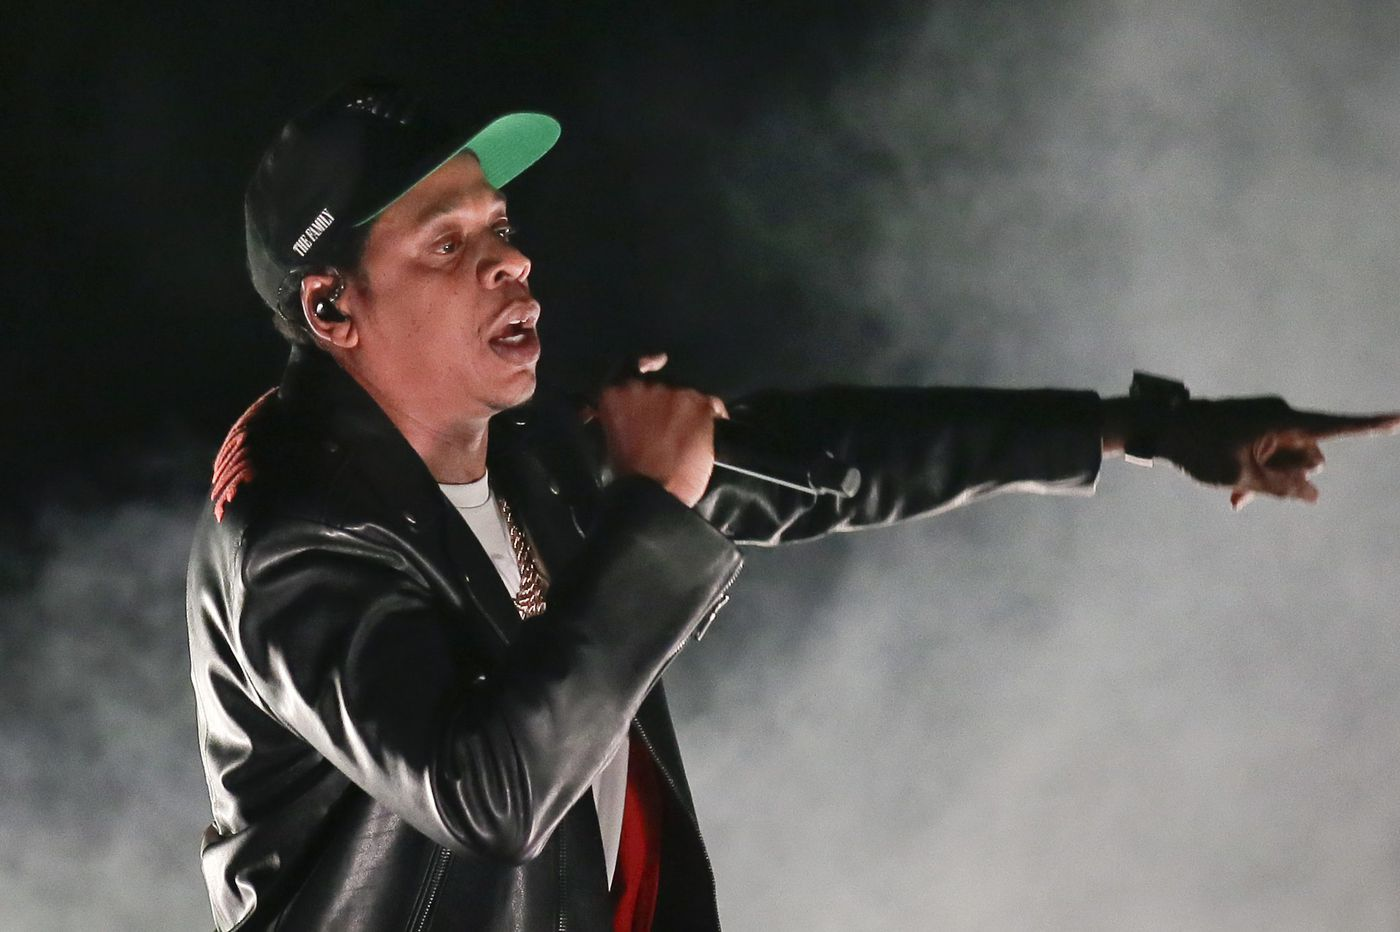 Philly lawyer files lawsuit against Jay-Z's Roc Nation, Amazon over leaked Meek Mill recording